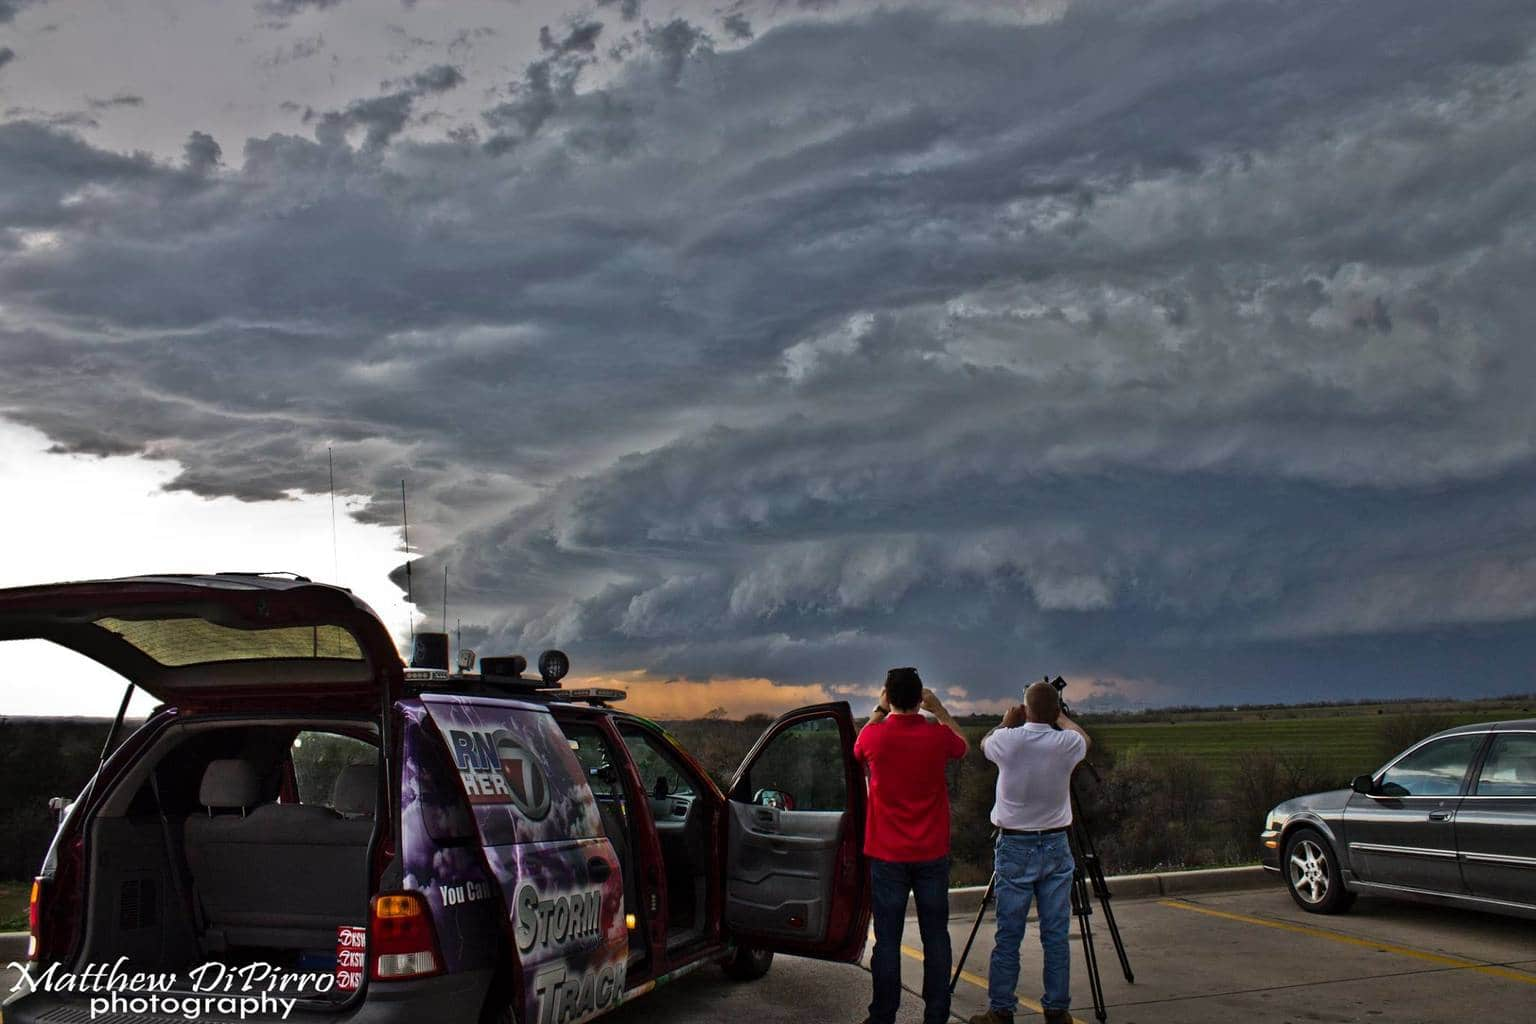 Just north of Anadarko, OK from this past Wednesday, March 25th. No HDR editing here, seriously, the clouds were amazing on this storm. Even my cell phones photos came out great.